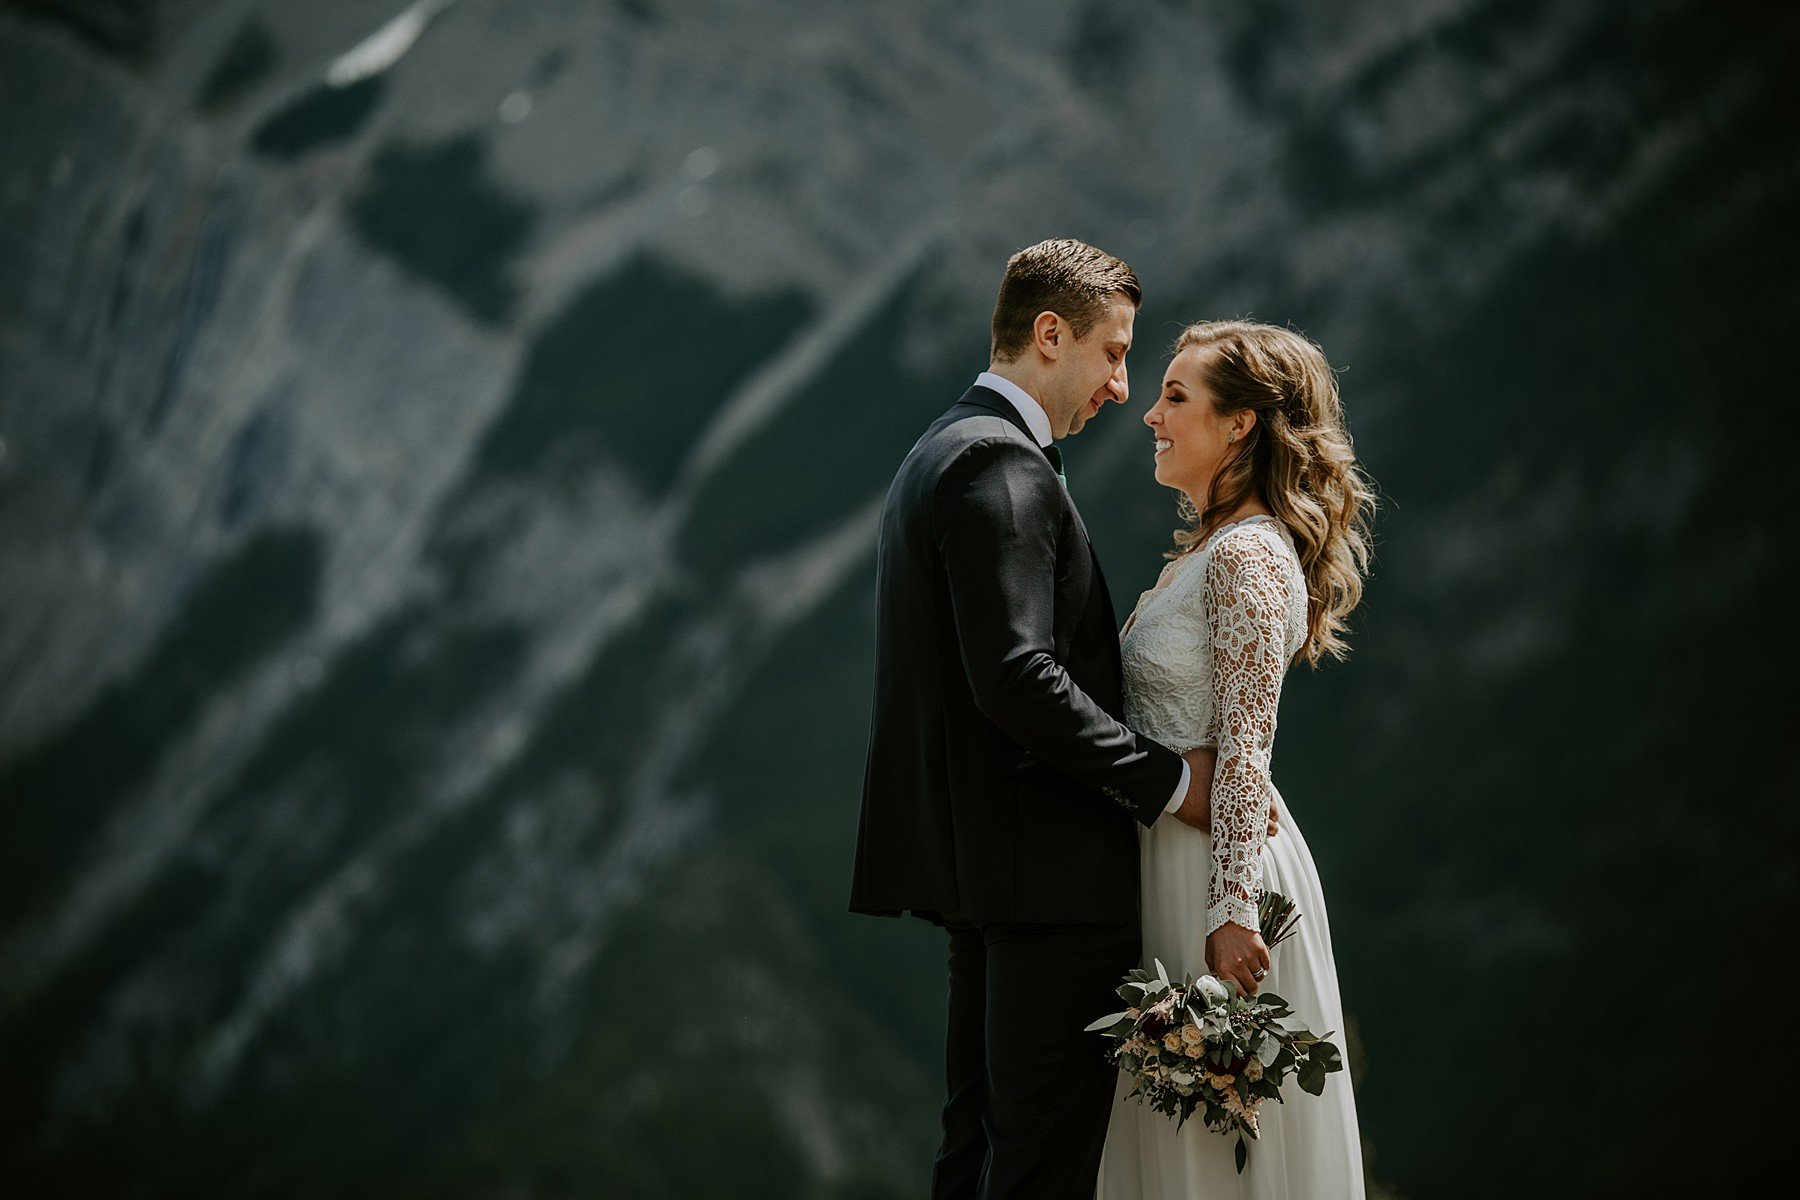 Teller of Tales Photography - Elopement - Tunnel Mountain Banff-70.jpg